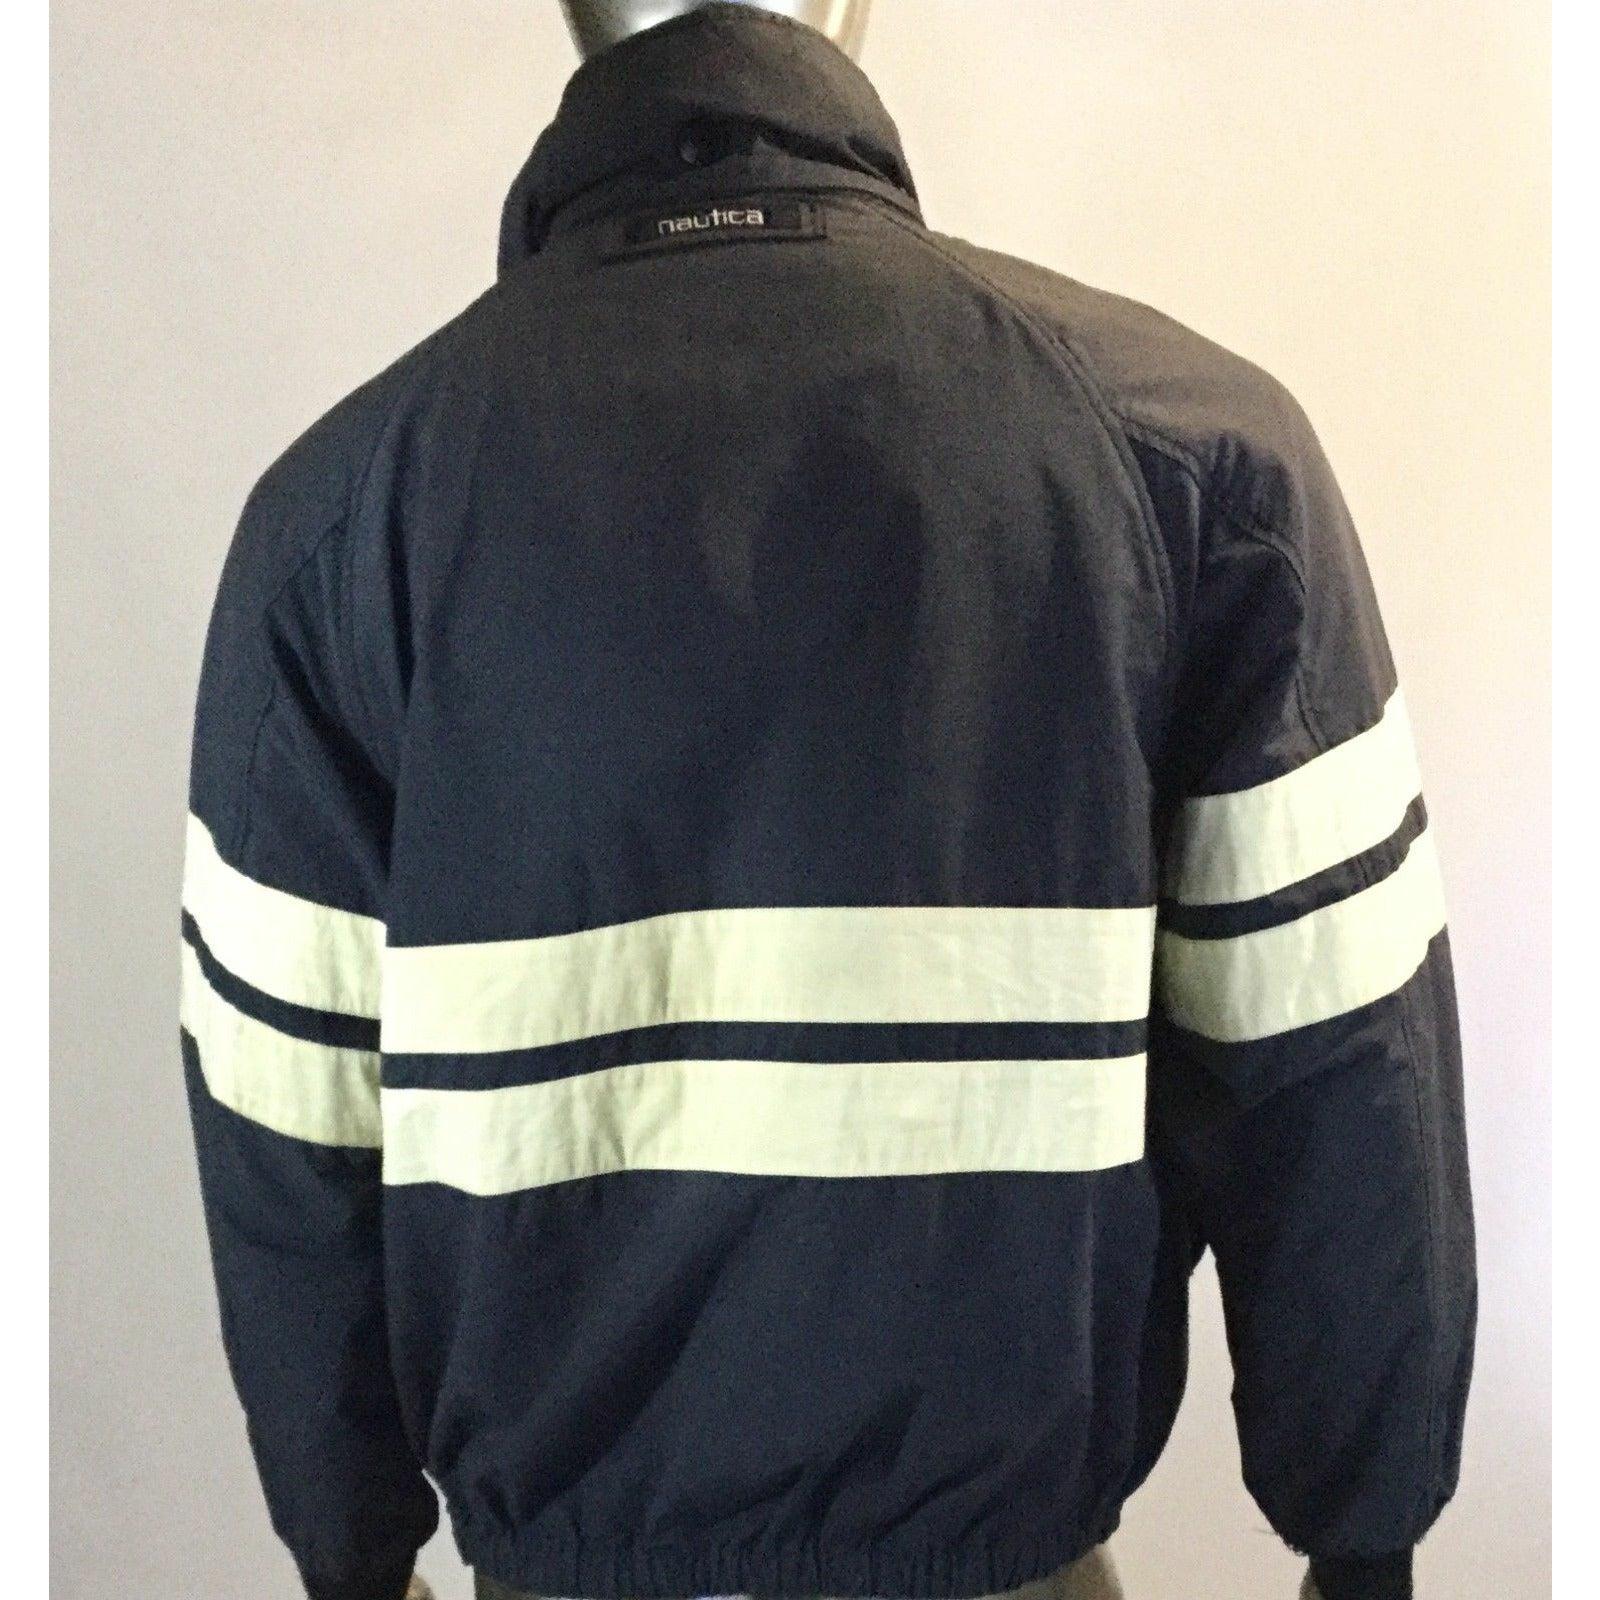 Vintage Nautica Men's Sail Sports Jacket, Col Navy, Block Windbreaker, Size S